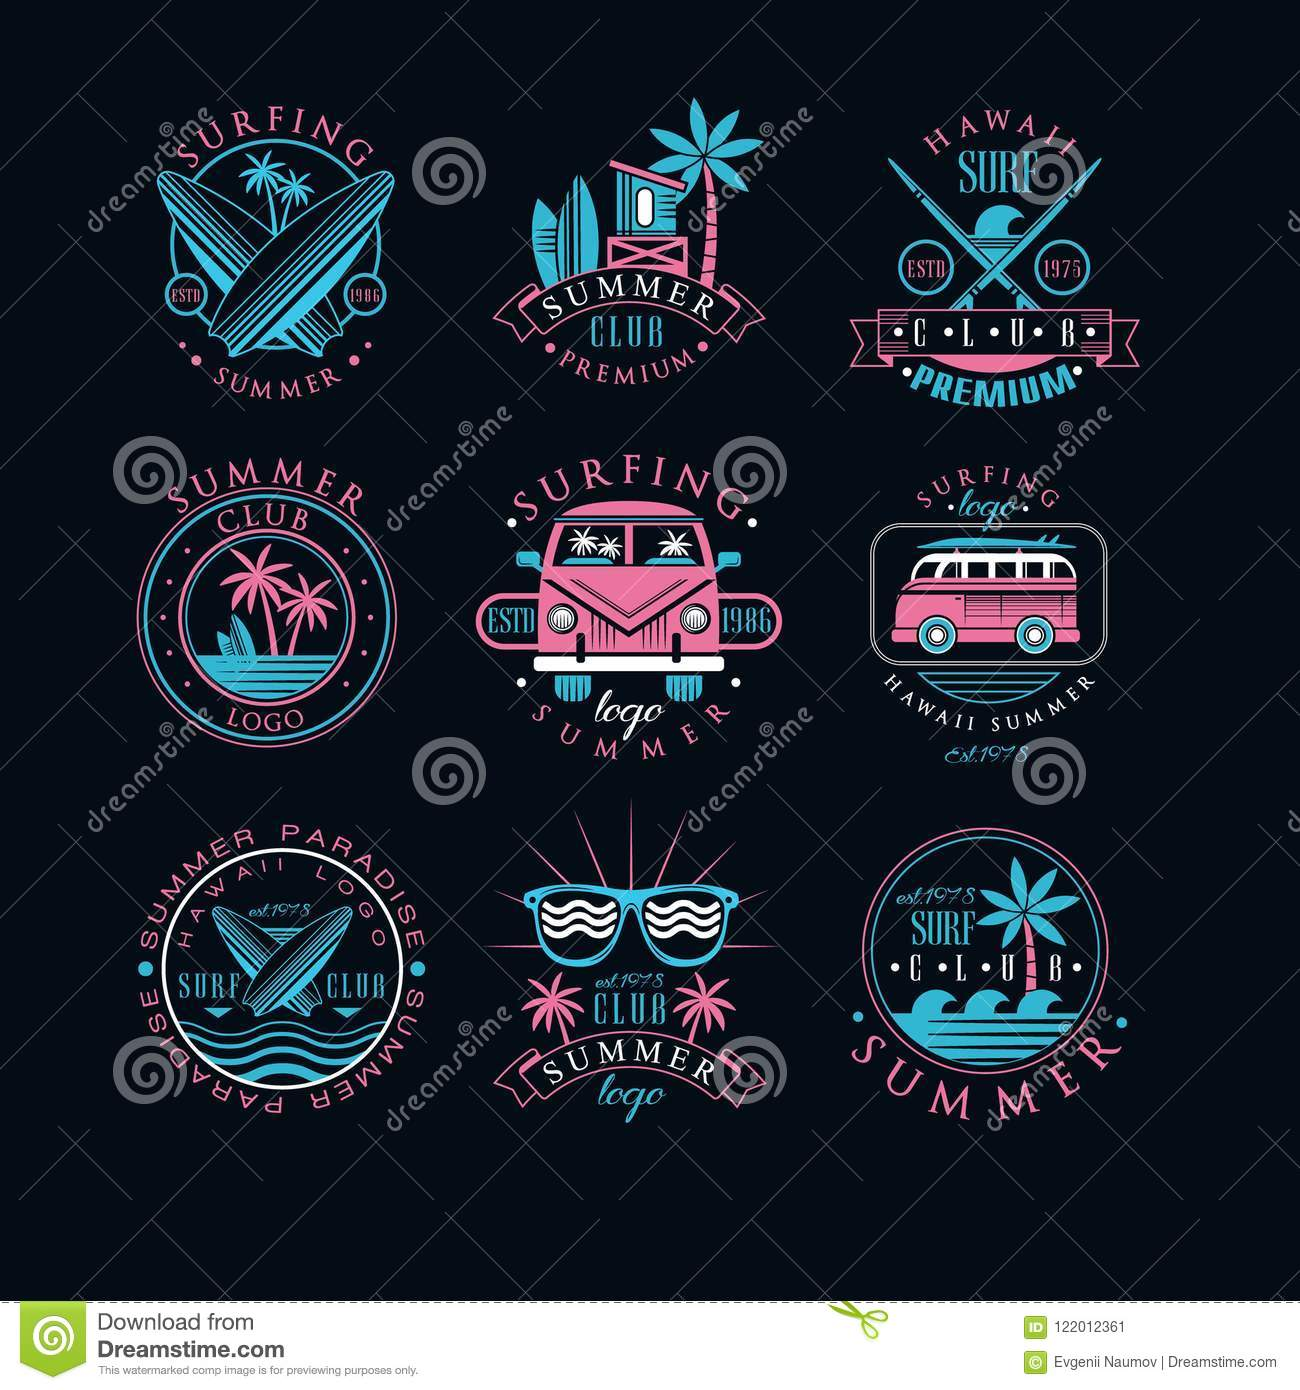 Vector set of vintage logos for surfing club. Creative emblems with surfboards, sunglasses, vans and palm trees. Hawaii